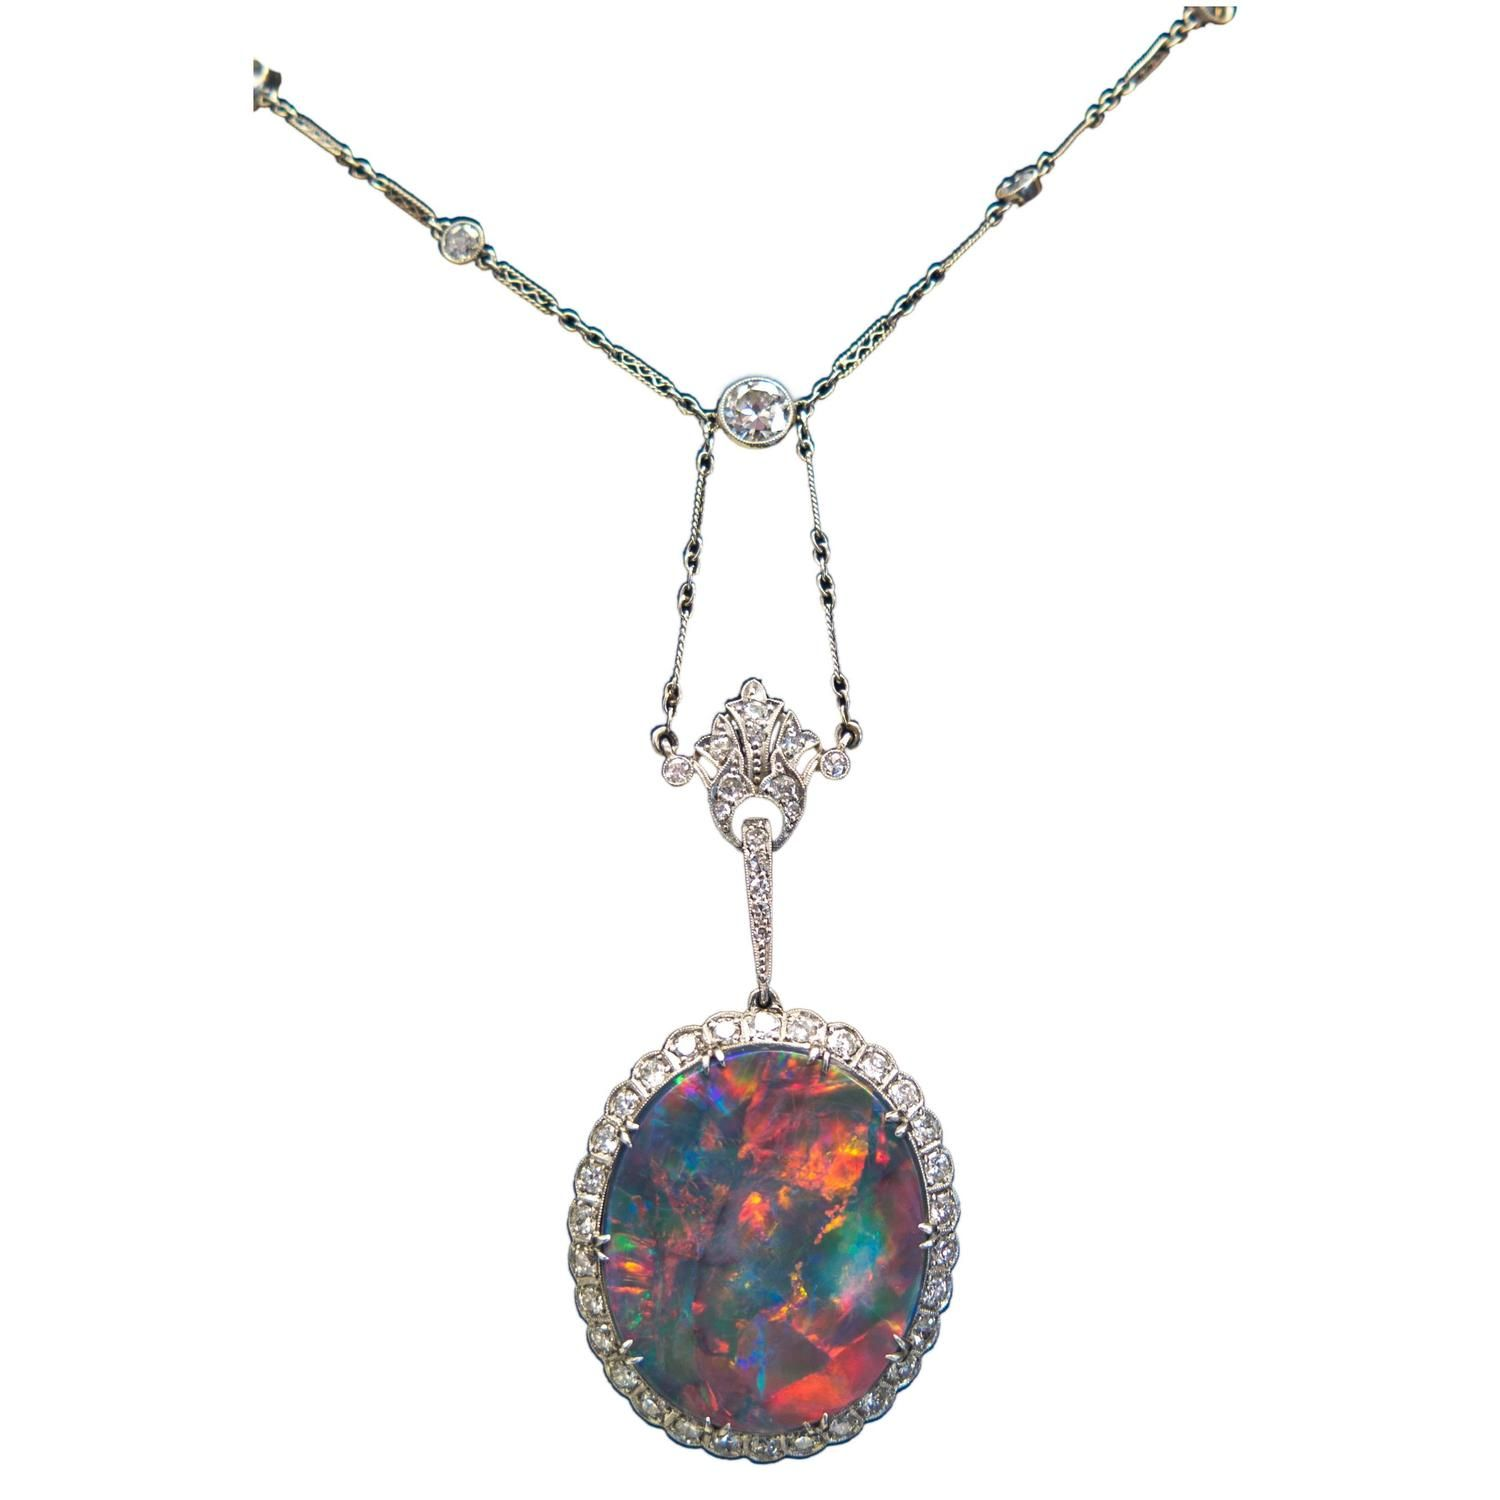 necklaces etal necklace australian opal black e anita g store pendant gold close melbourne crowther